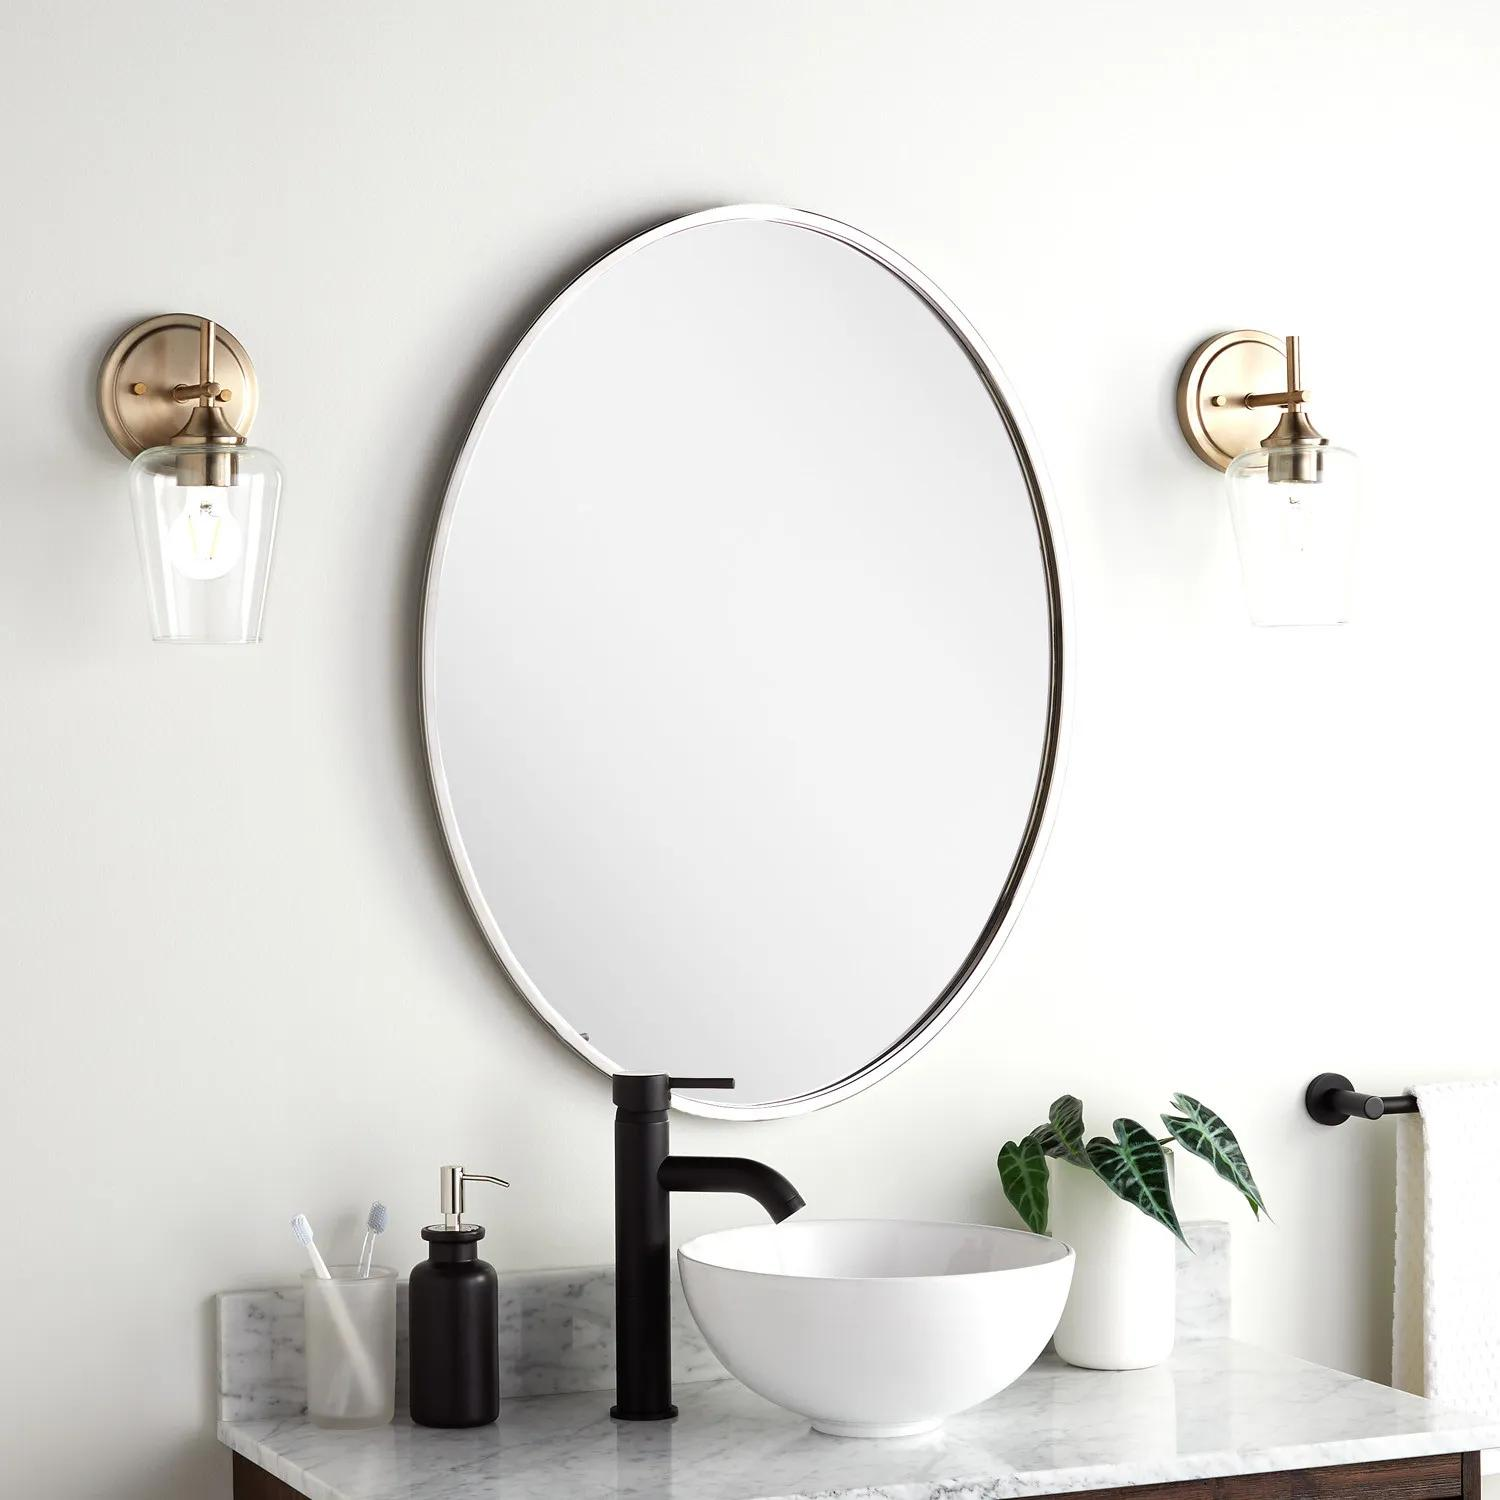 Amyr Oval Decorative Vanity Mirror Bathroom